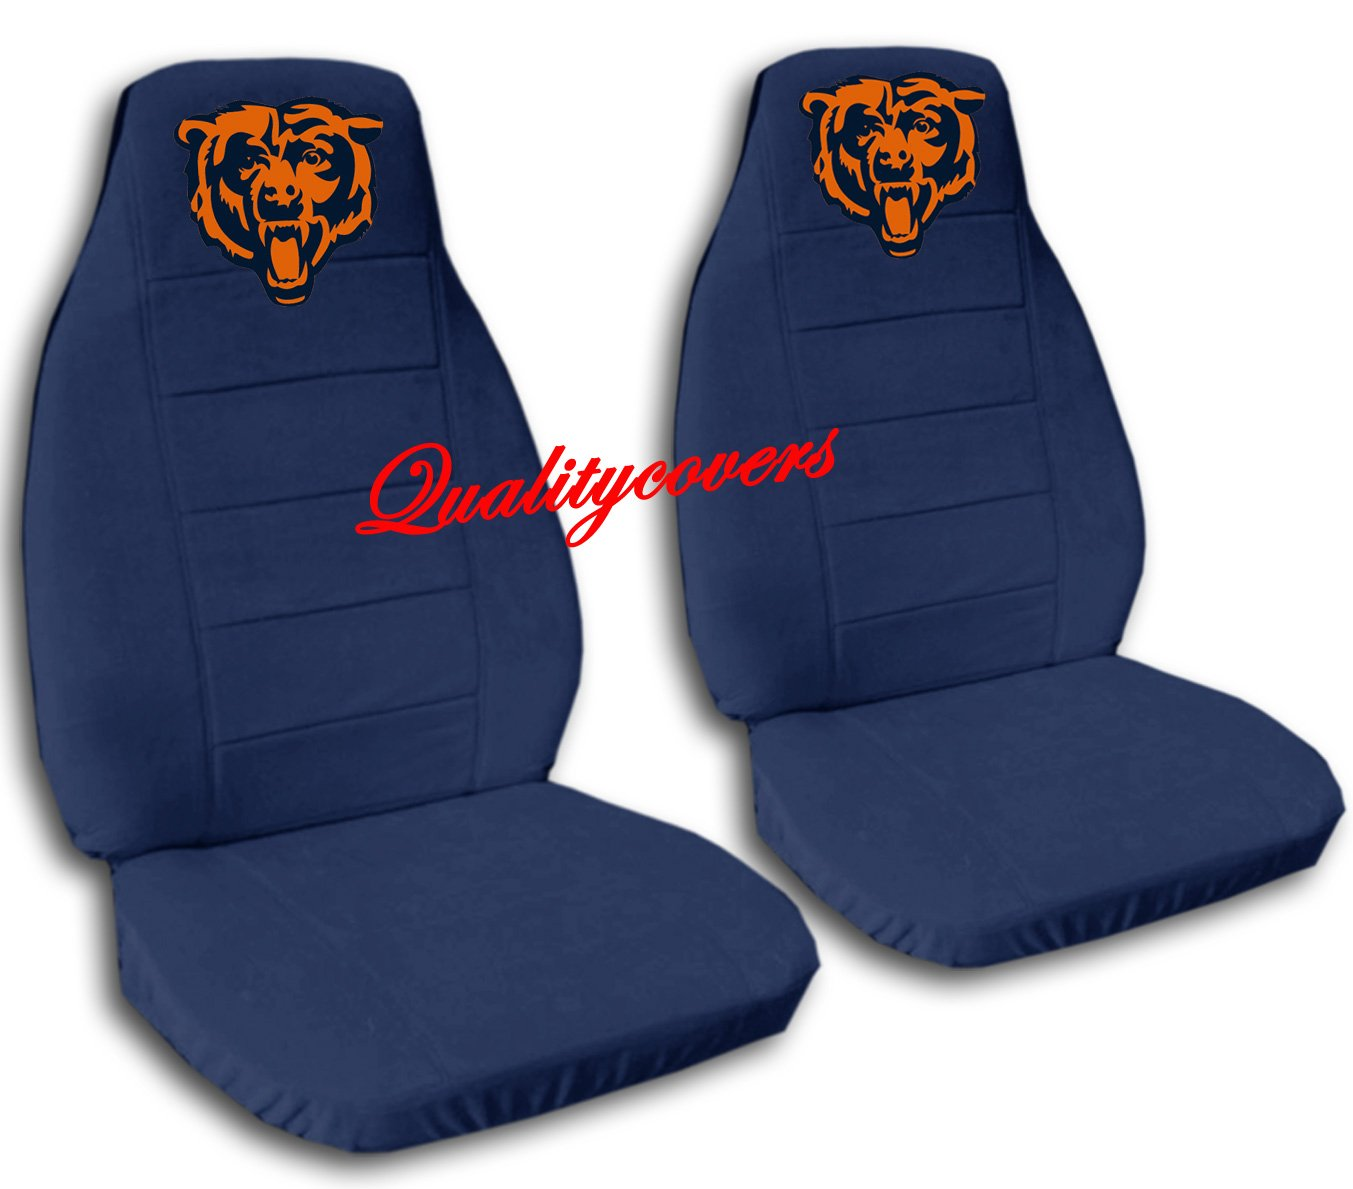 2 Navy Blue Chicago seat covers for a 2007 to 2012 Ford Fusion. Side airbag friendly.